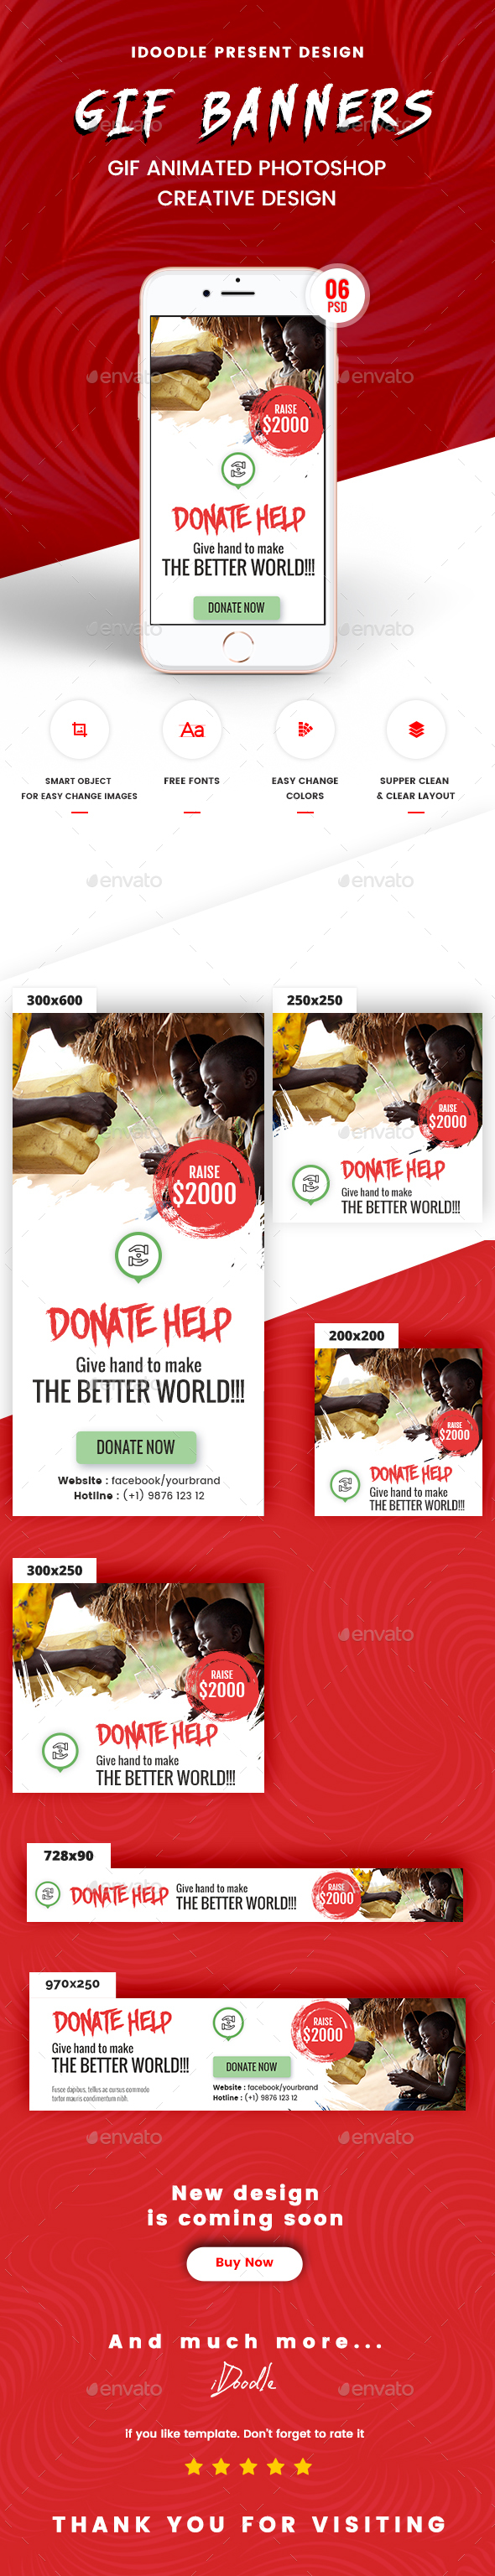 Animated GIF Nonprofit - NGO, Charity/Fundraising Banner Ads - Banners & Ads Web Elements